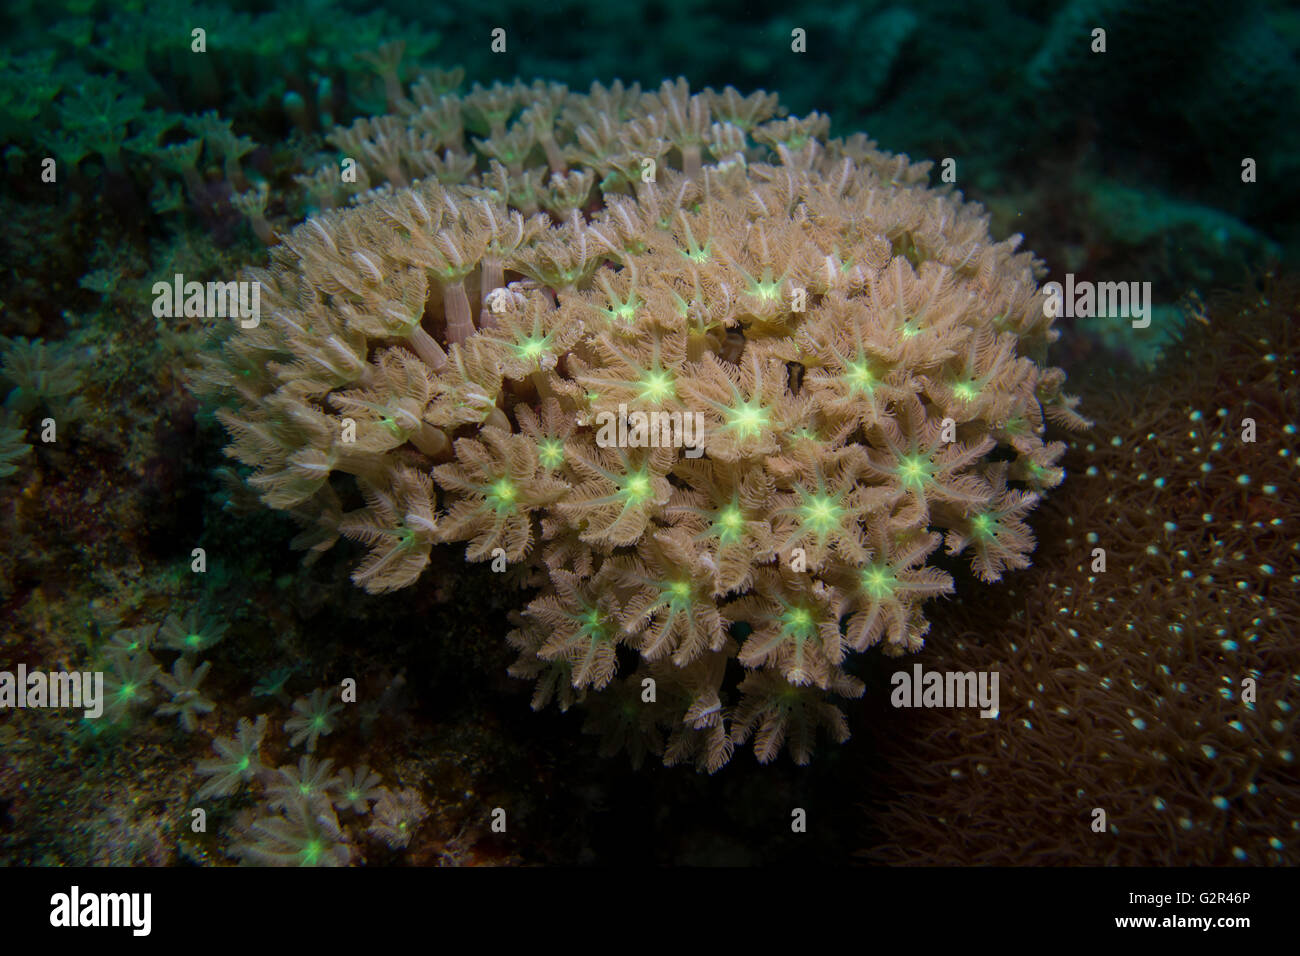 Soft coral, Xeniidae, from the South China Sea, Coral Triangle, Brunei. - Stock Image